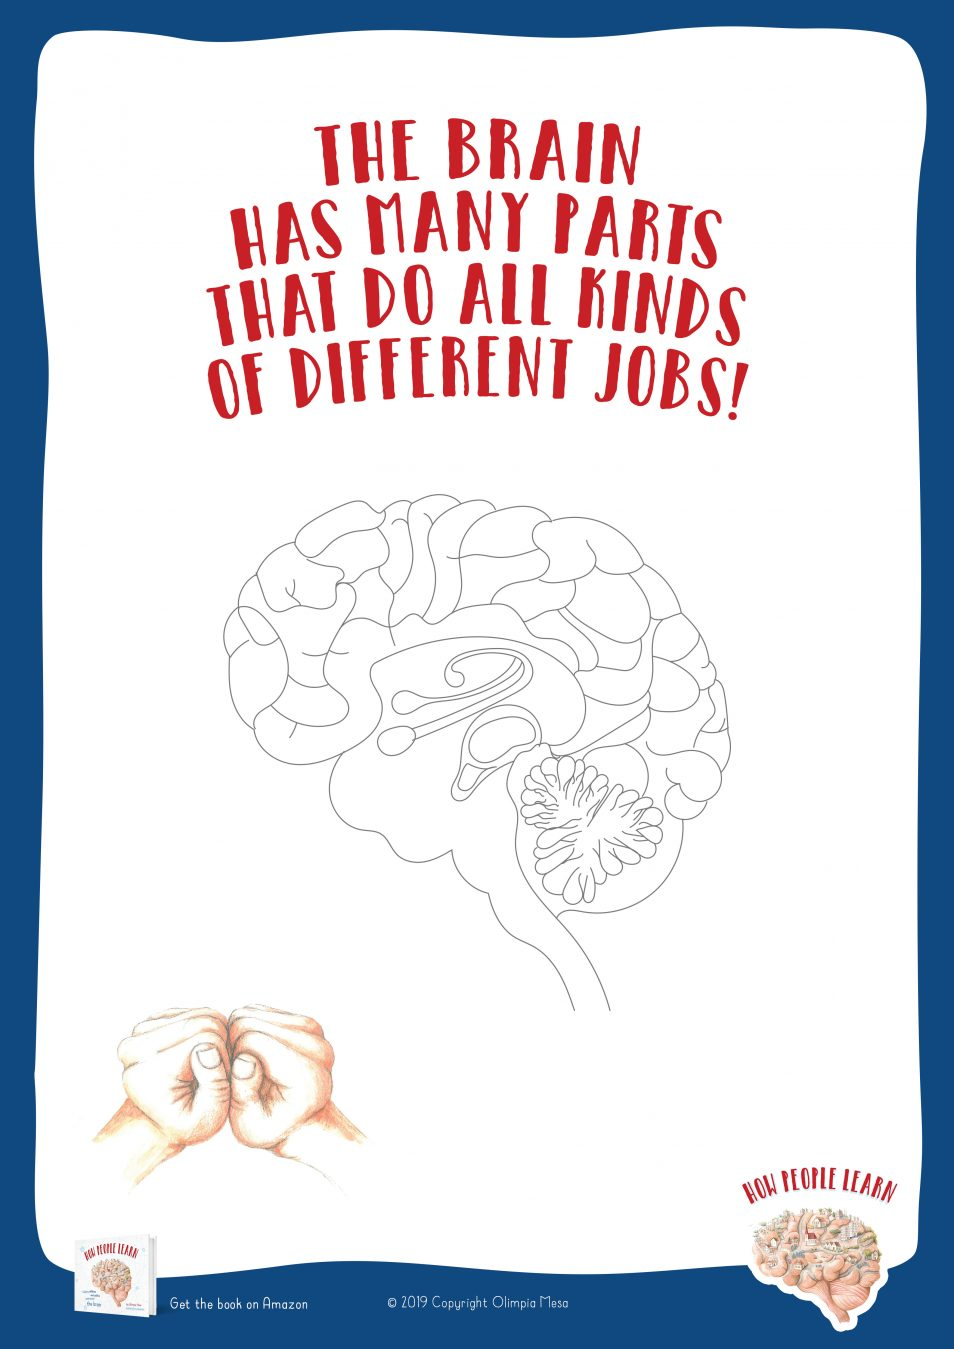 The brain has many parts that do all kinds of different jobs!